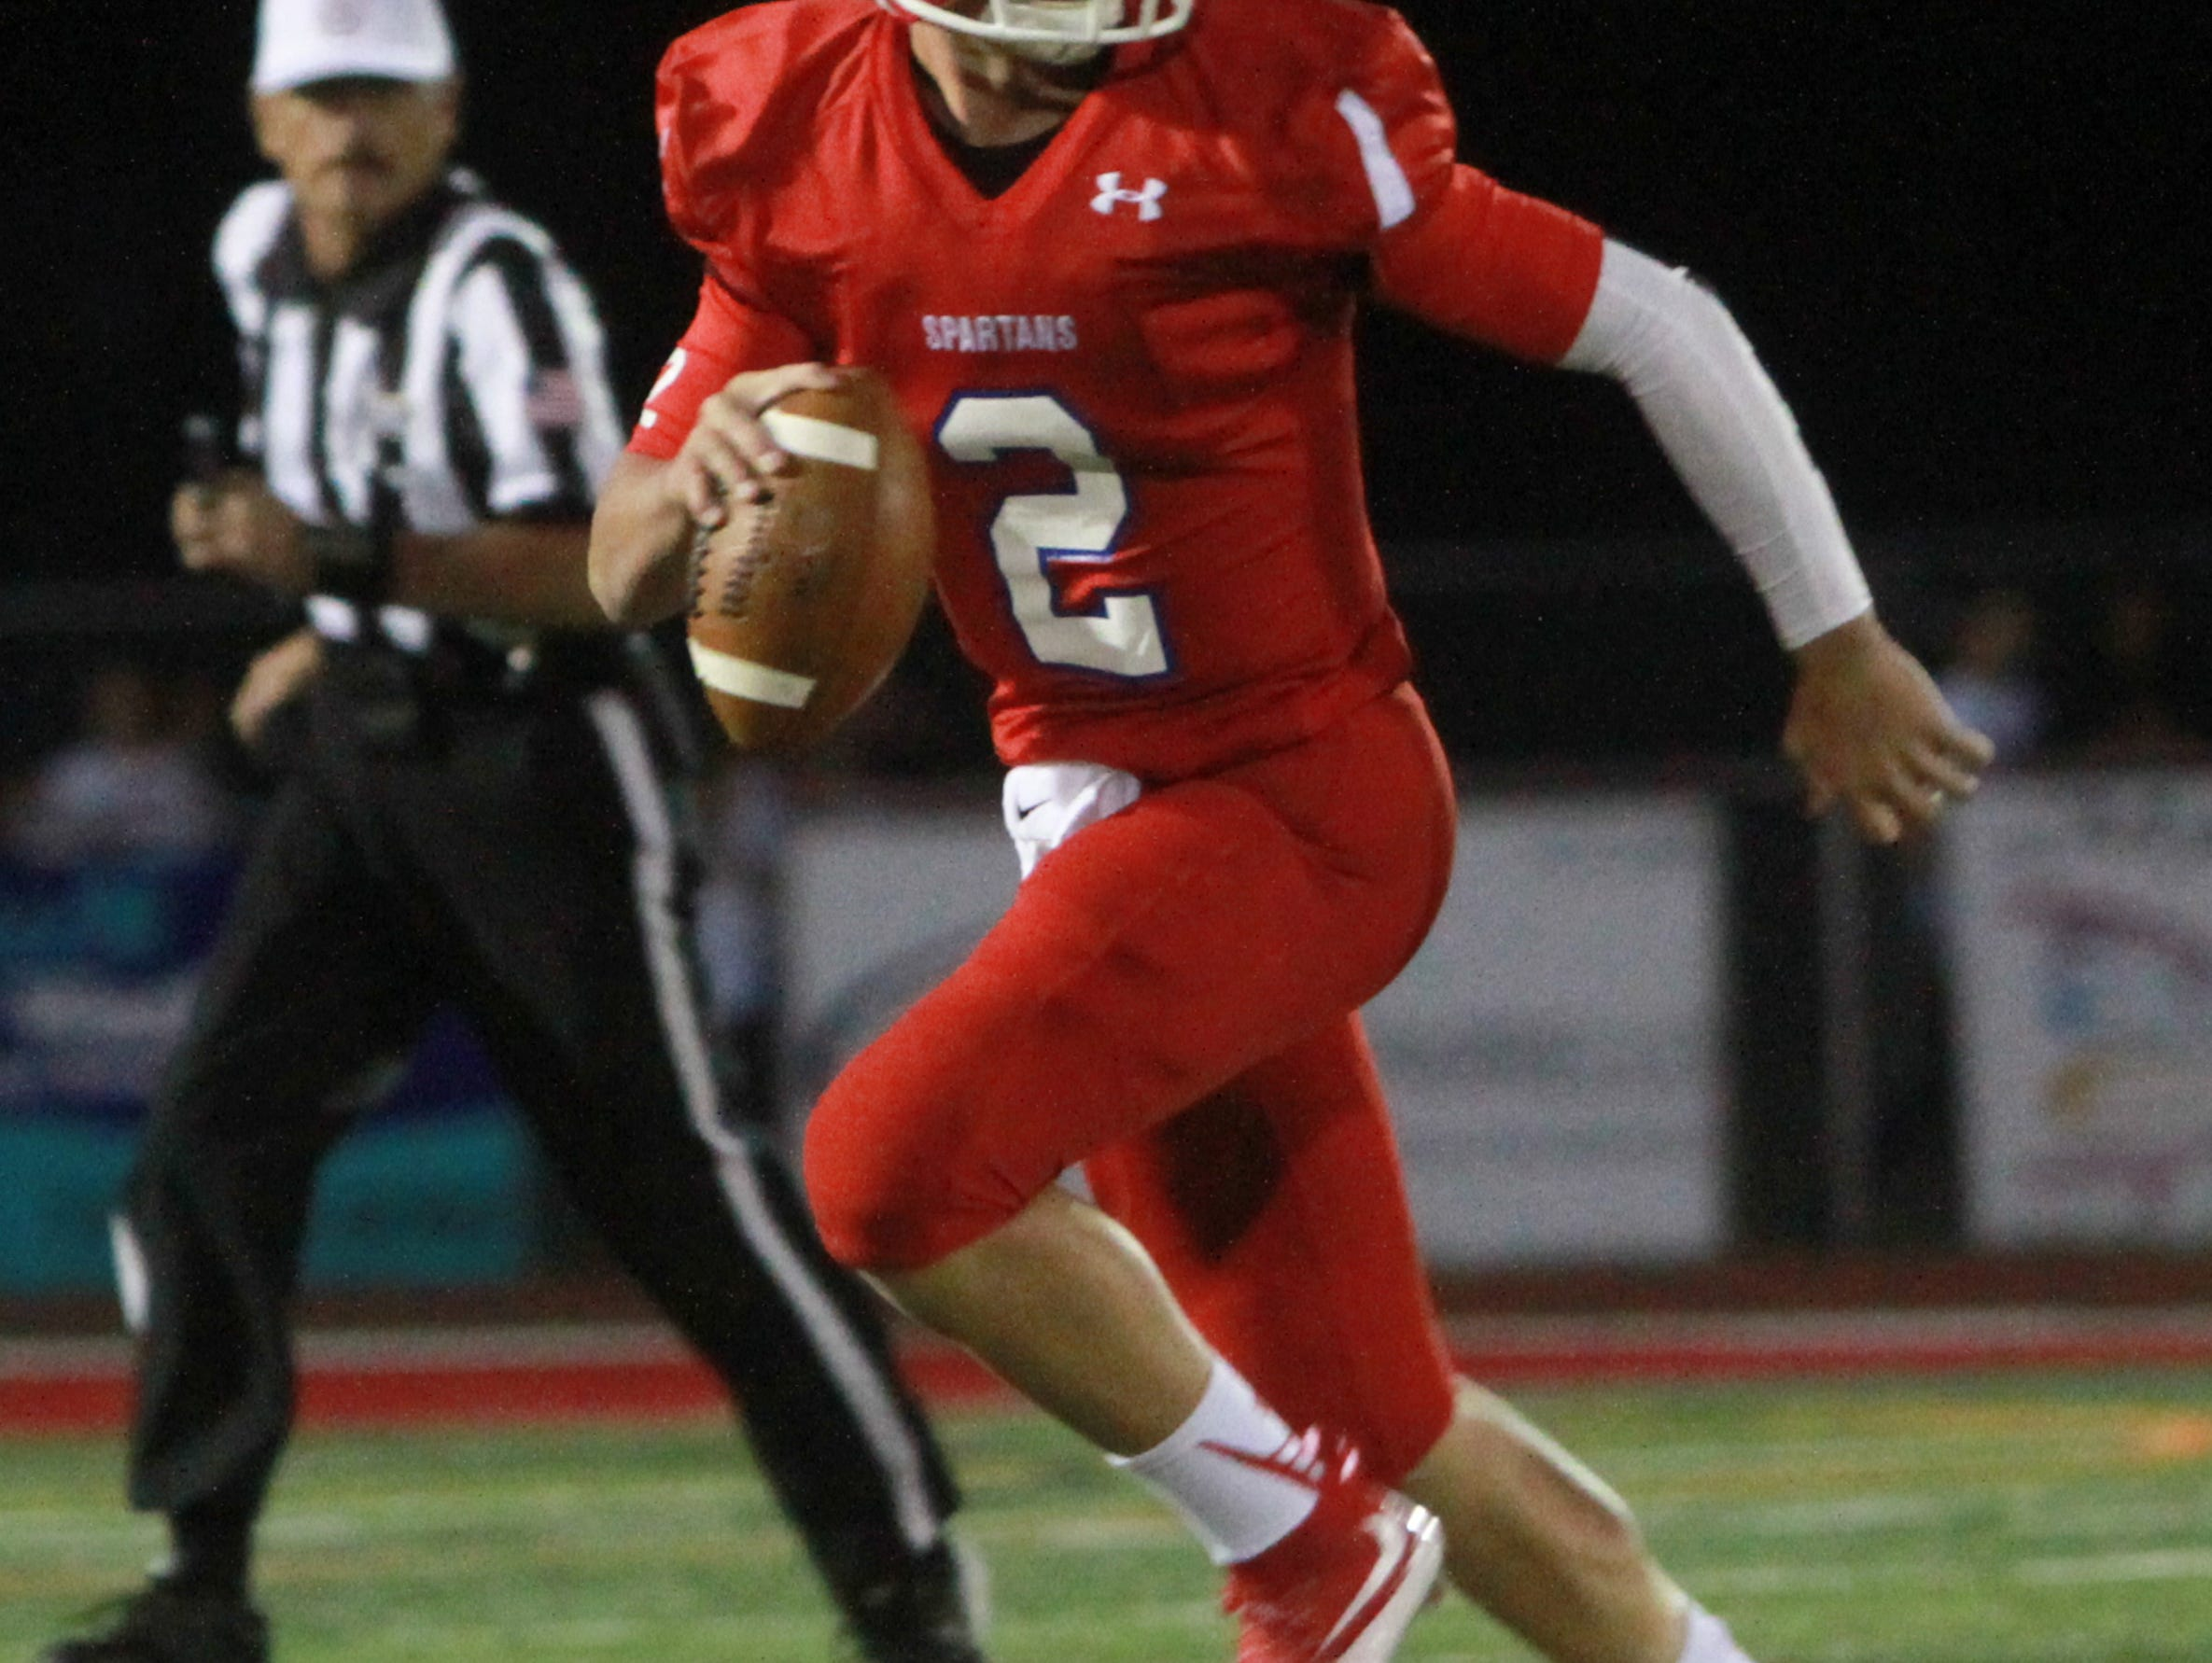 Ocean, NJ Red Bank at Ocean Friday night football. Ocean's QB #2 Kenny Pickett carries the ball in the first quarter. 092415